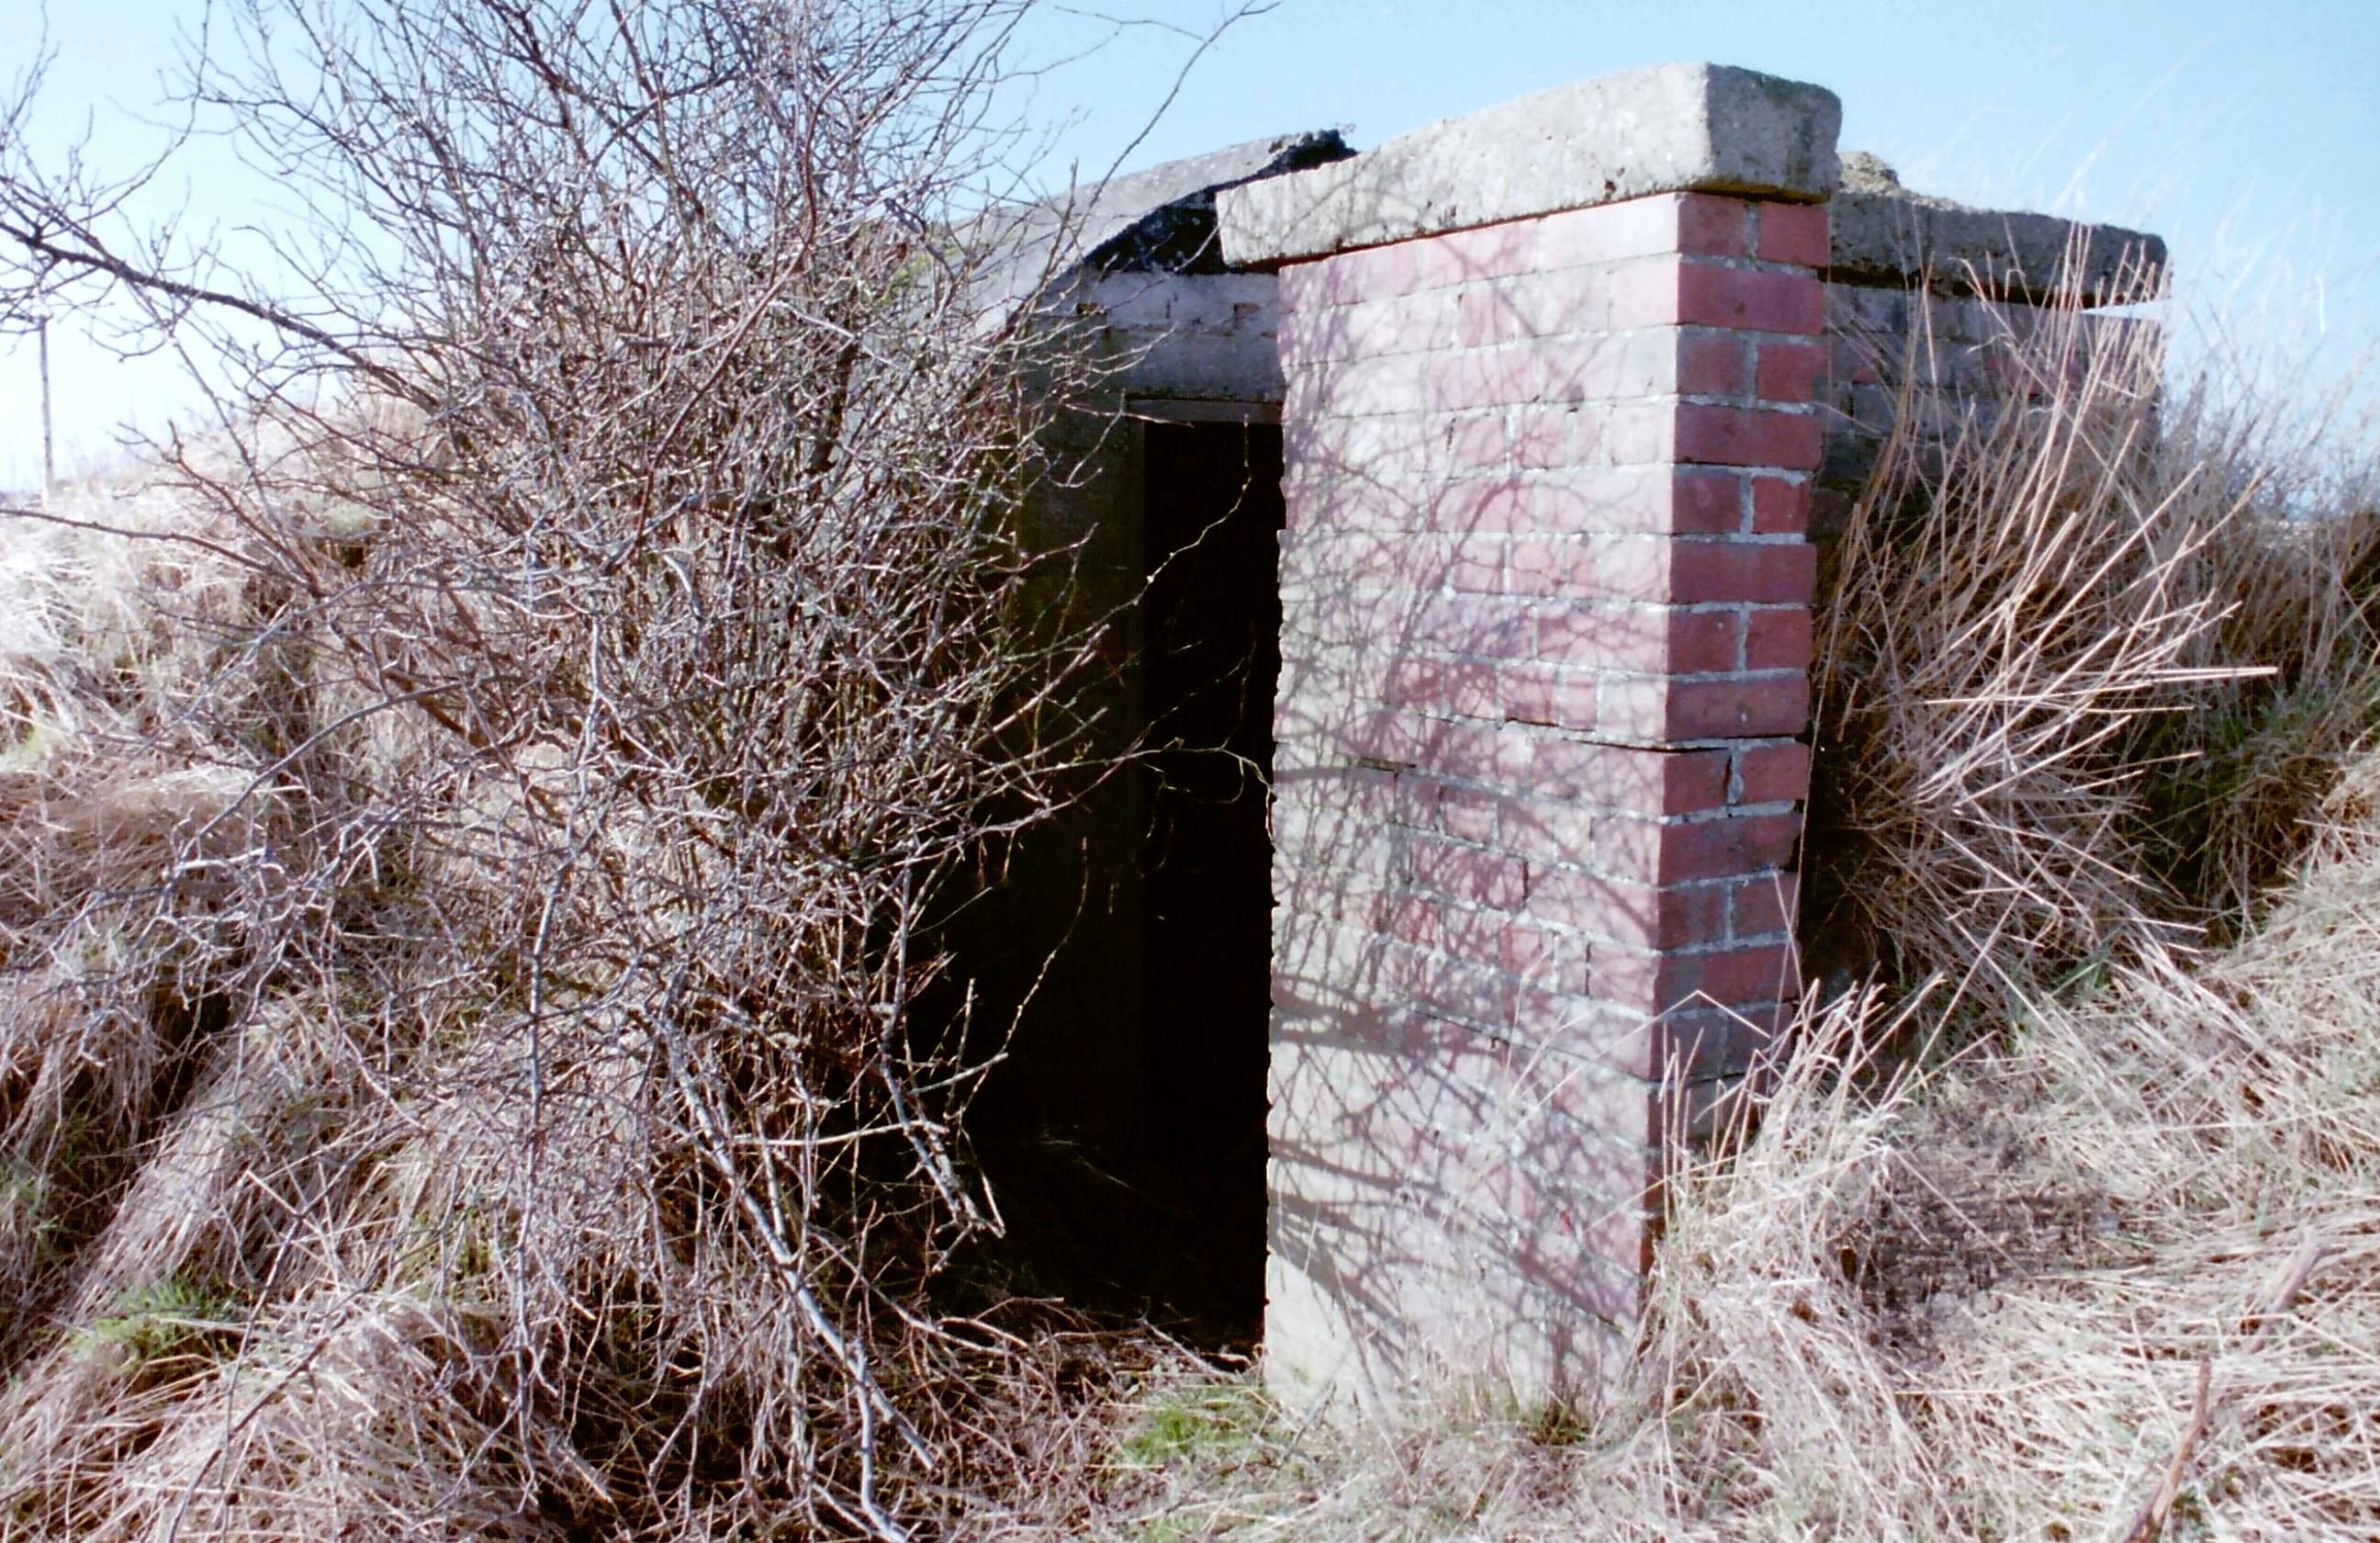 air-raid-shelter-teesdie-airport-2